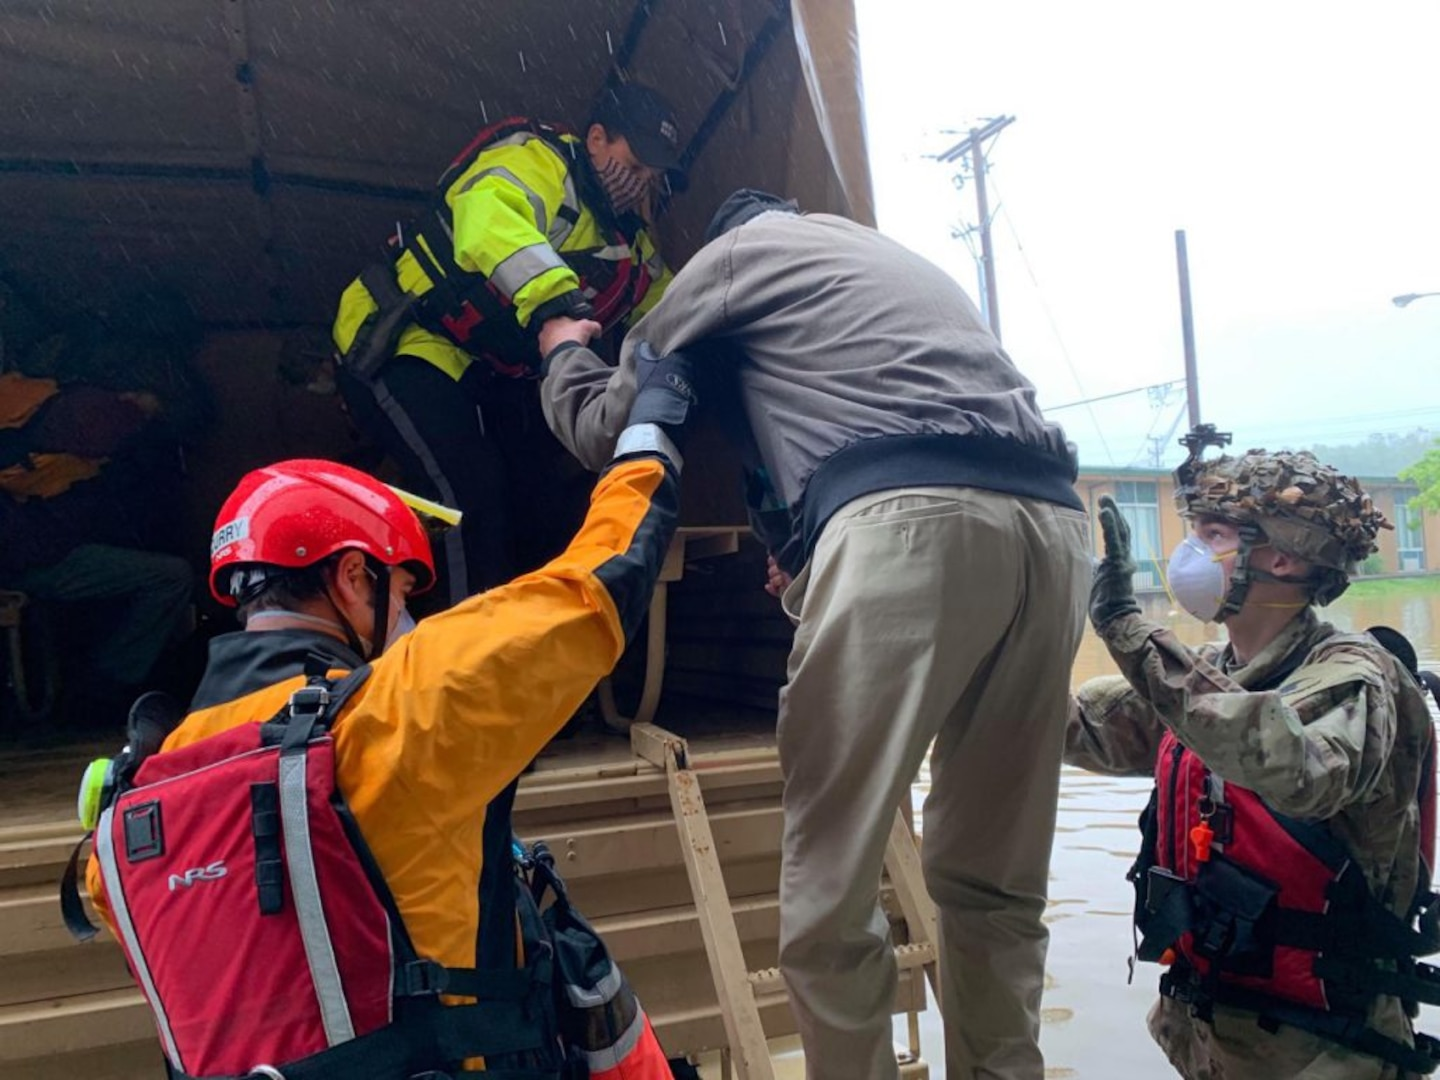 Red Dragons assist Roanoke first responders with flood evacuations